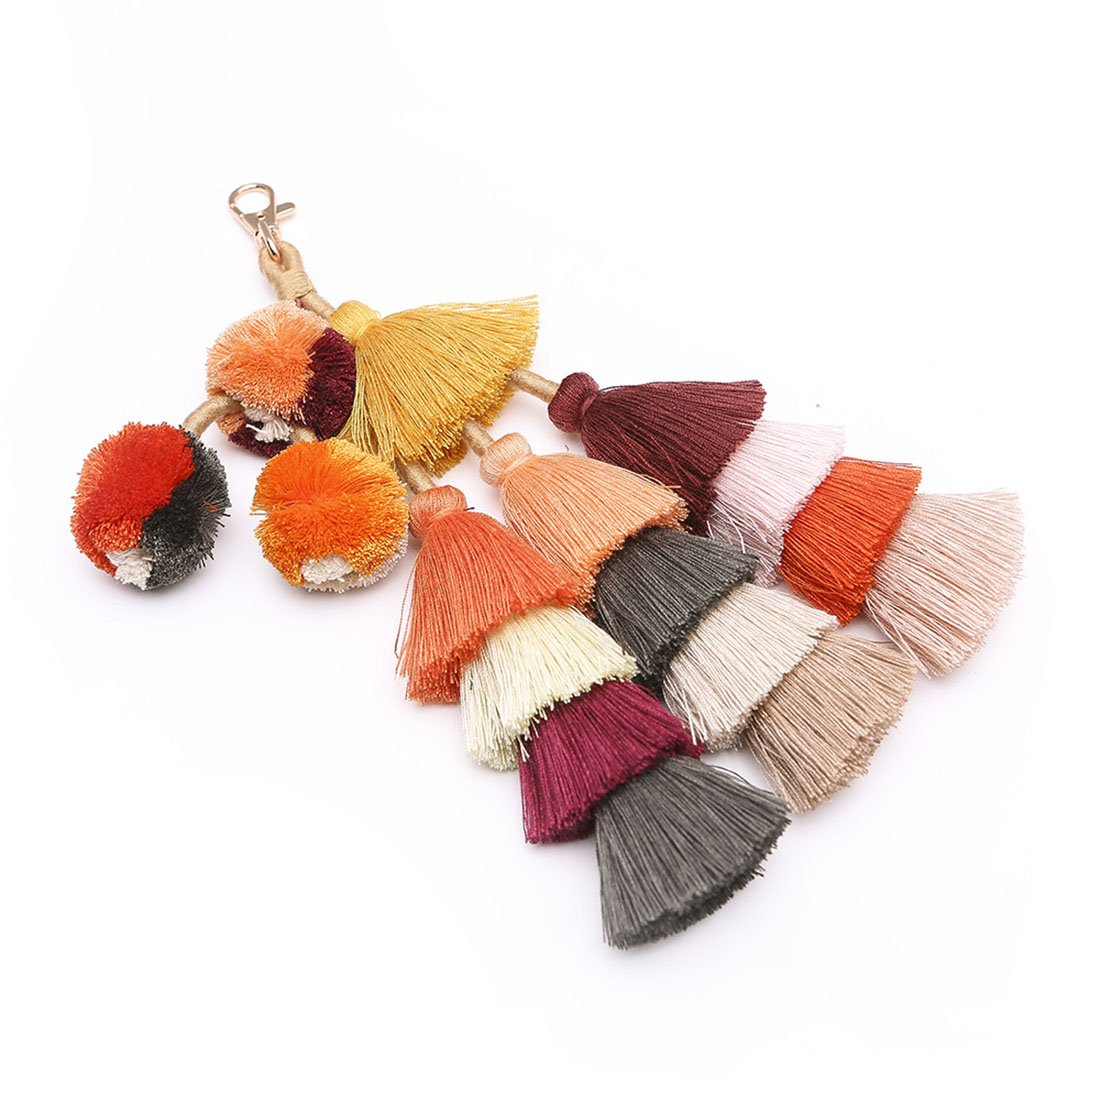 Pom Pom Key Chain for Women Colorful Tassel Knit Keychain Pendant for Bag/Car (Brown Colorful)